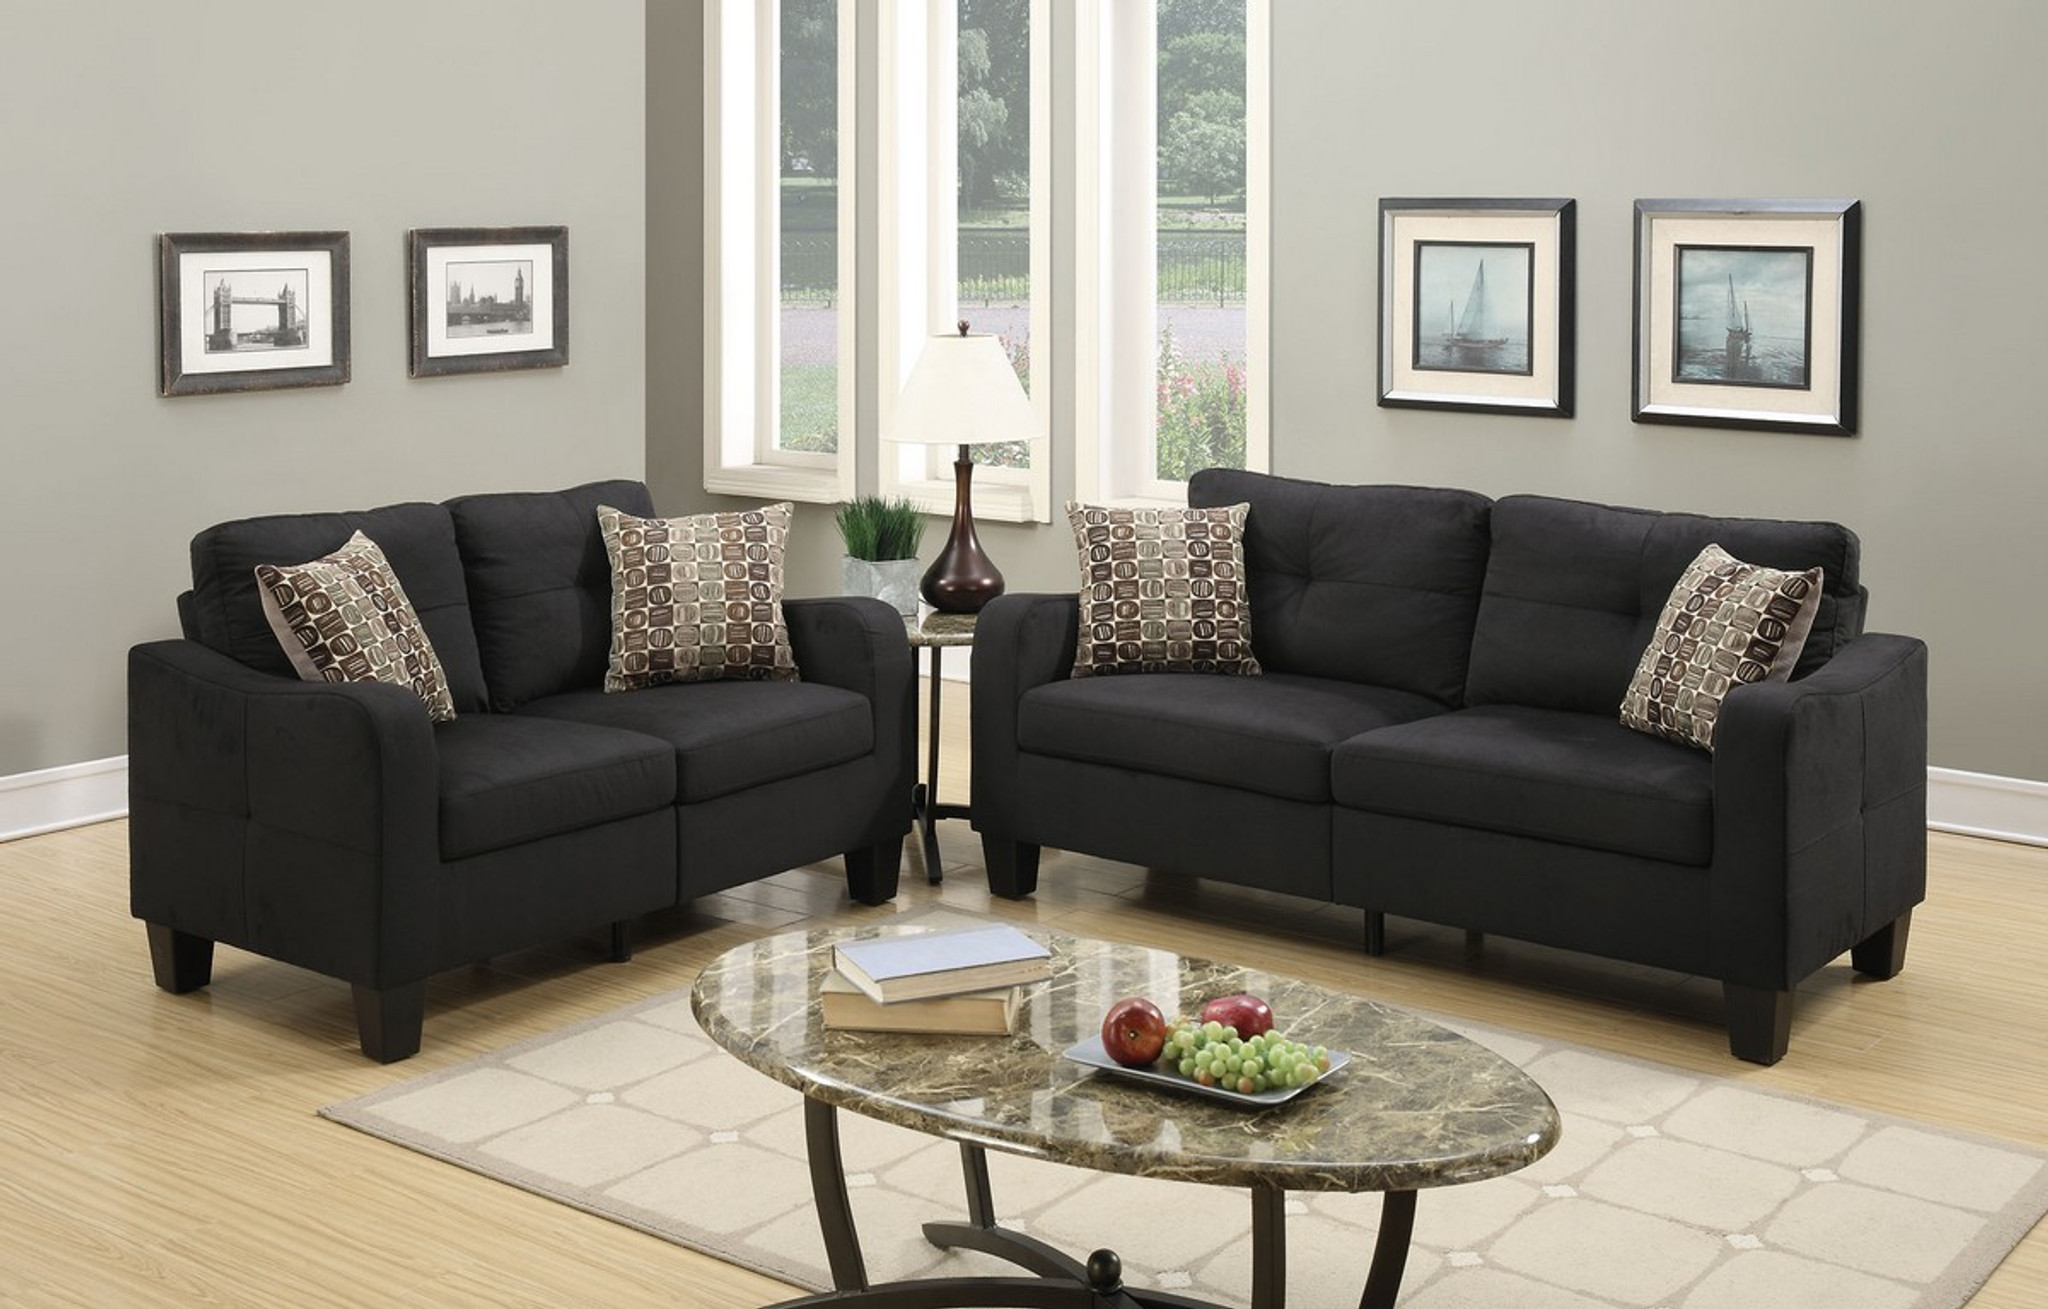 Kassa Mall Home Furniture F6922 Loveseat Sofa Set With Four Accent Pillows And In Black Linen